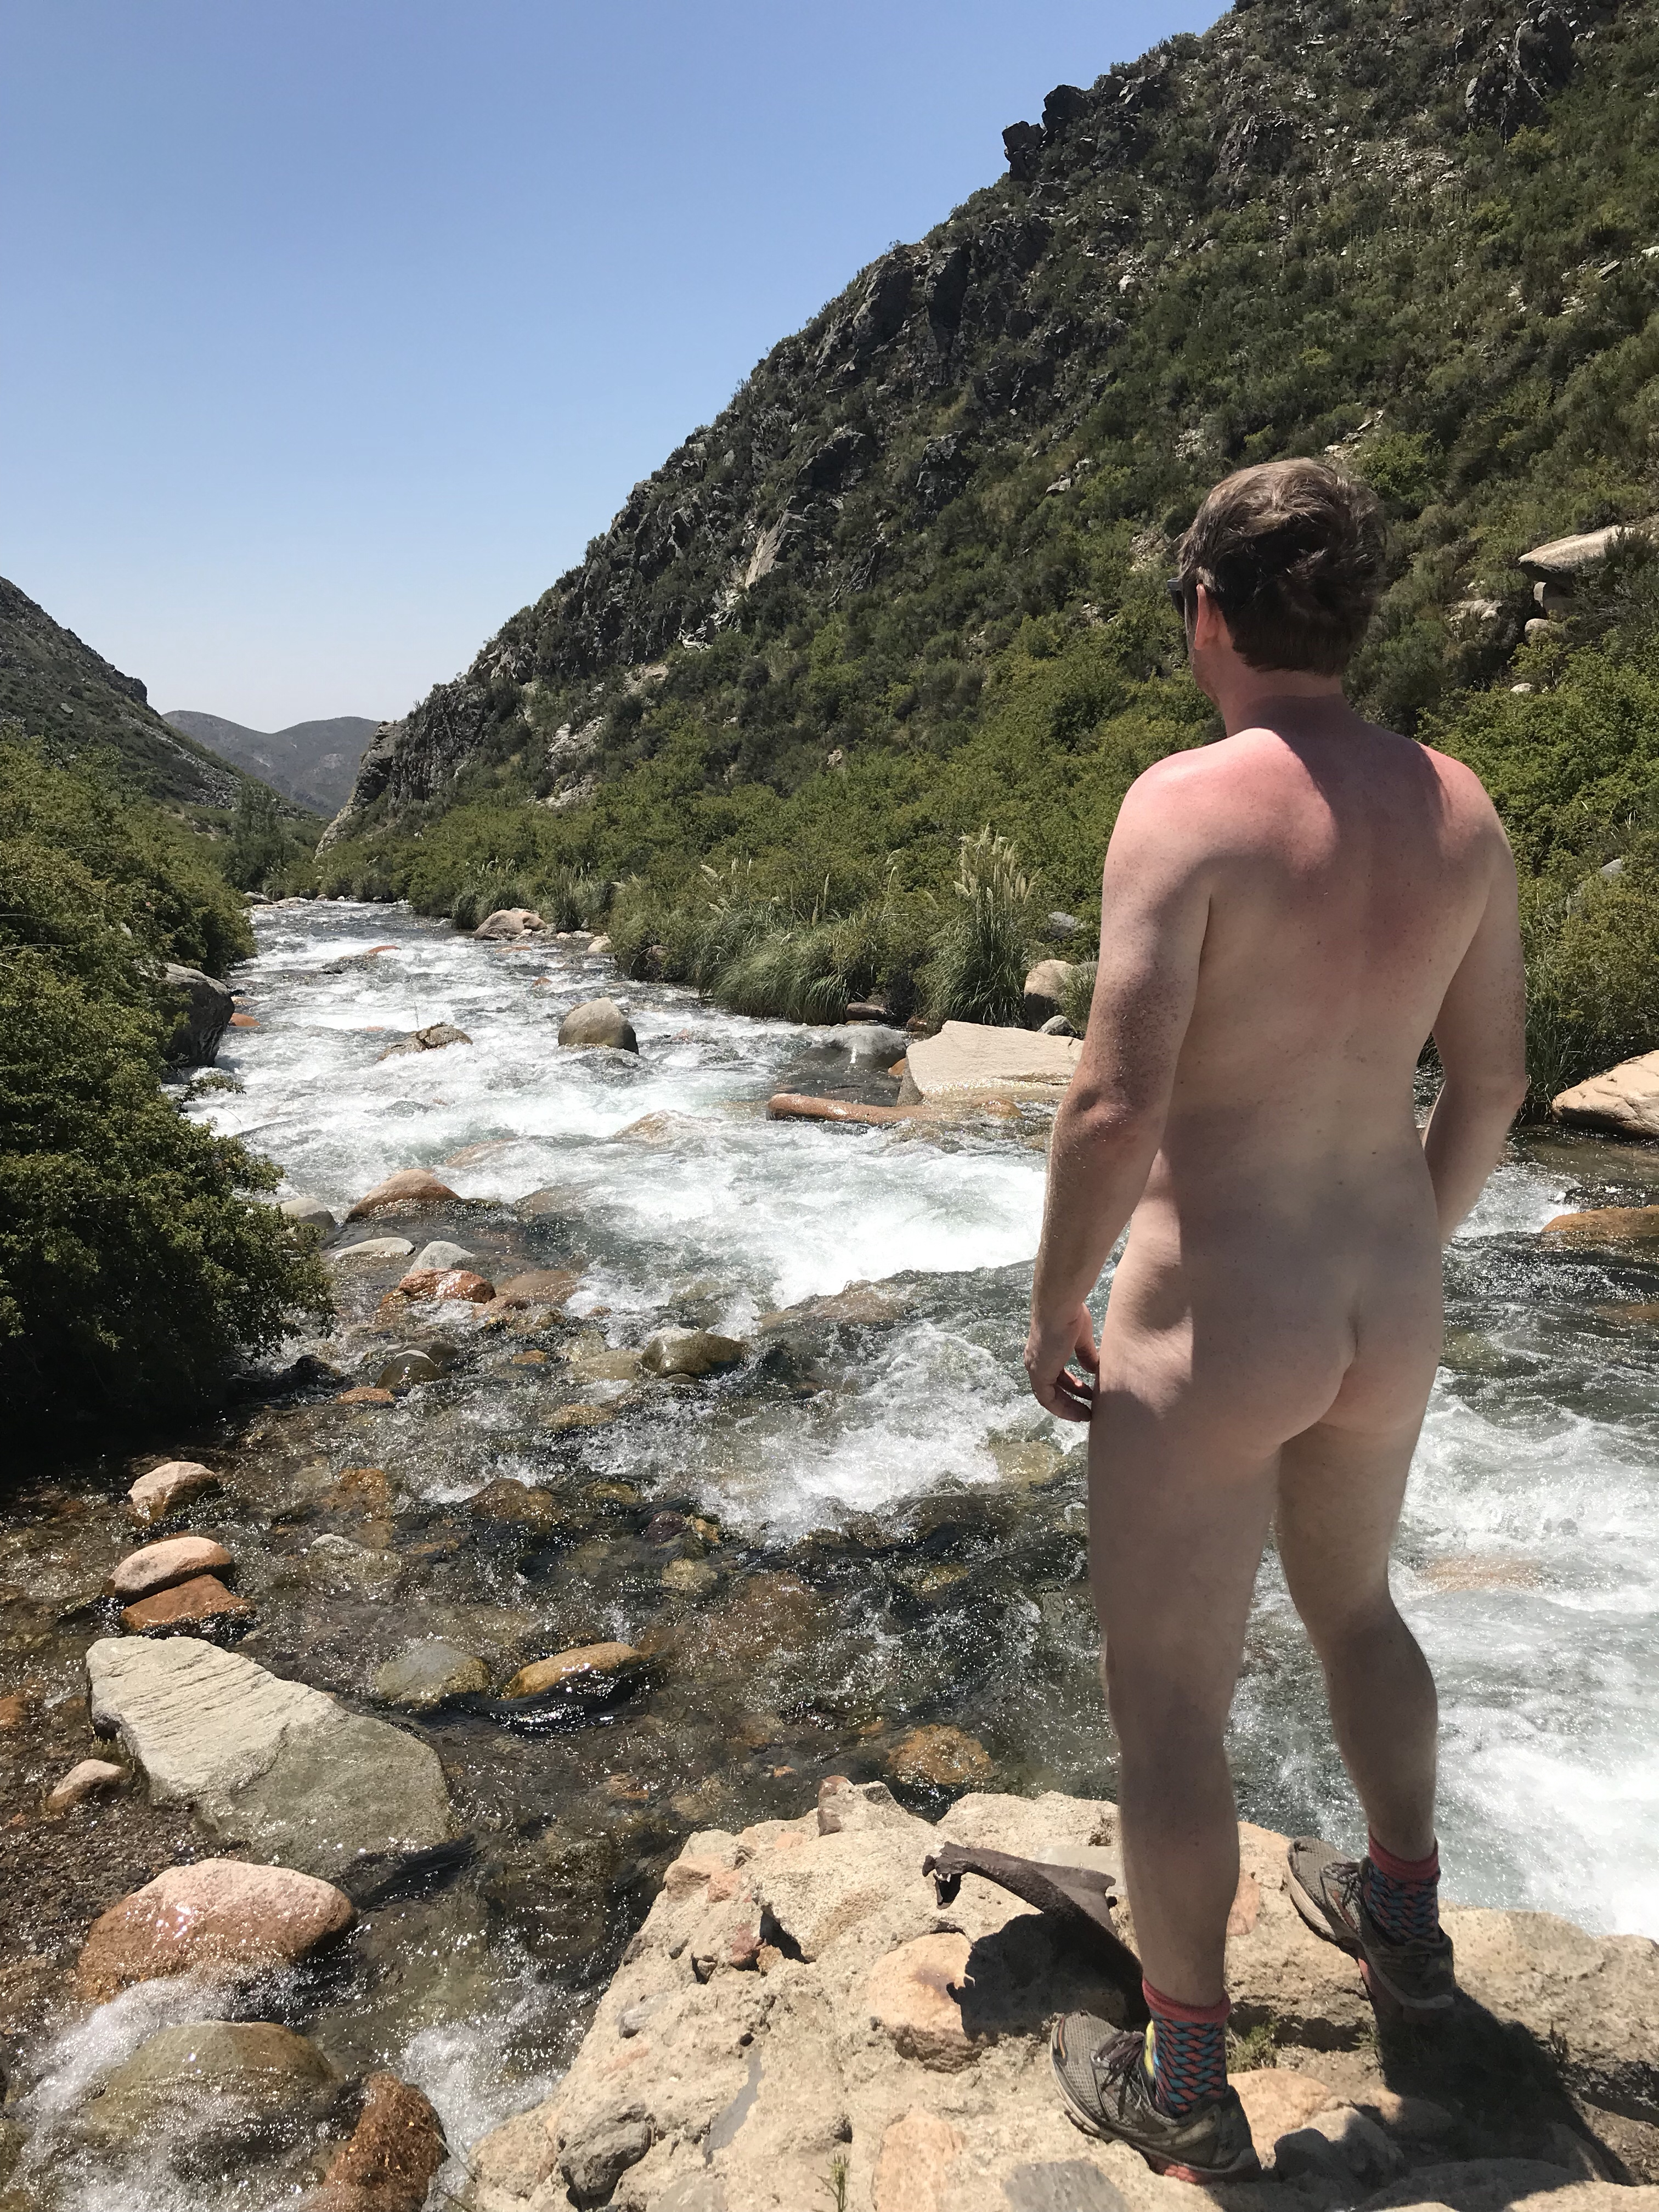 Our holiday routine - public nakedness in beautiful places